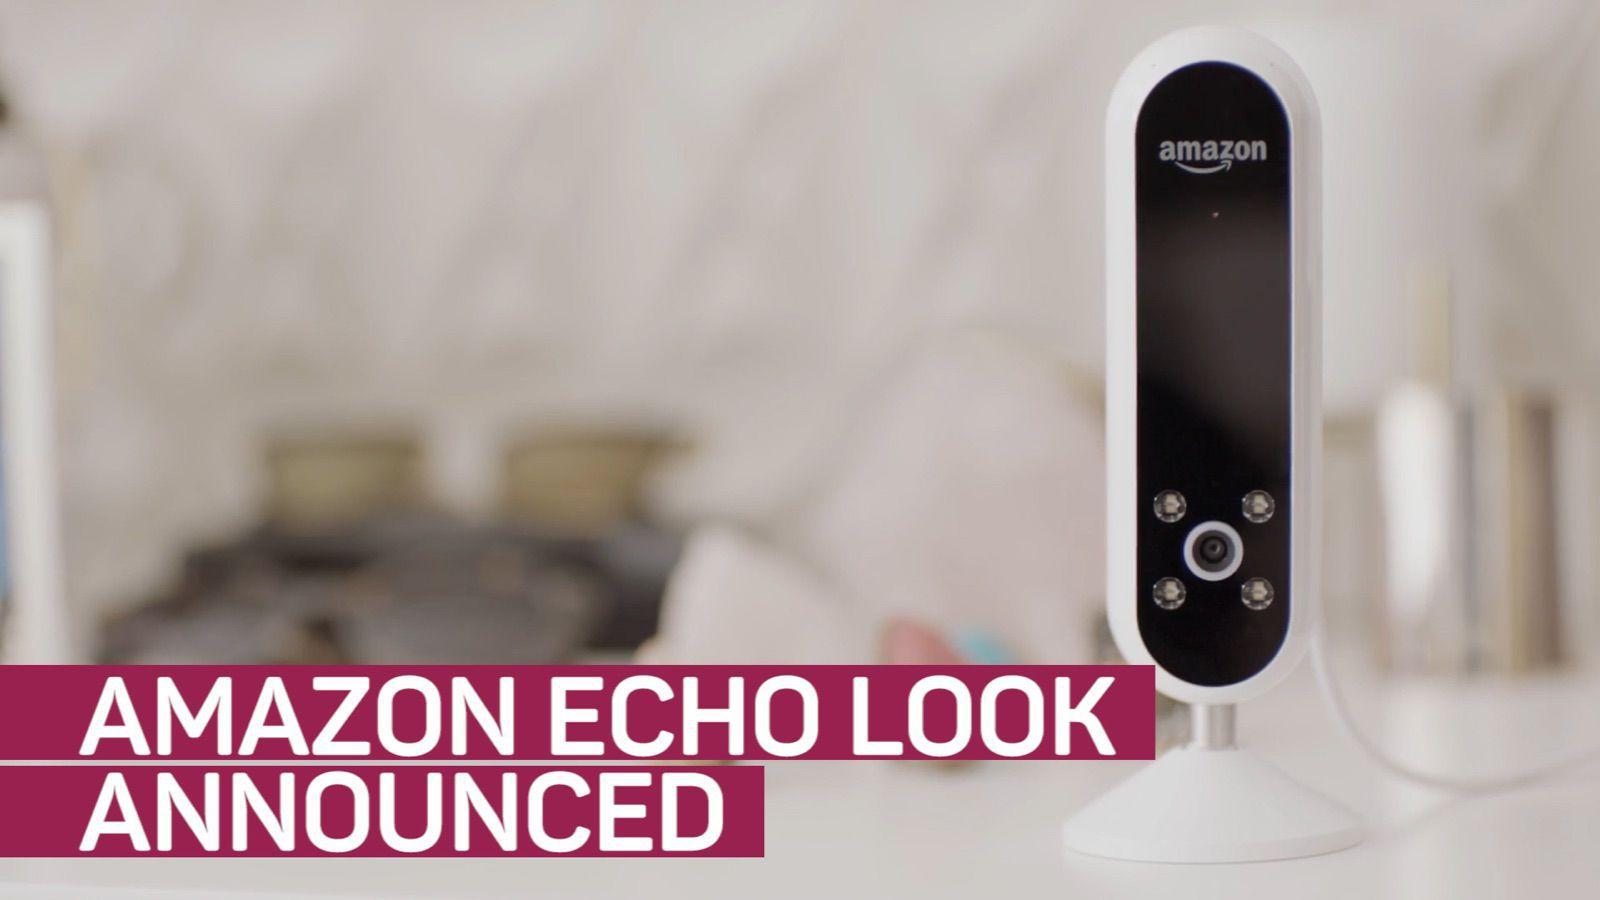 Amazon's Echo Look offers fashion advice. Here's why